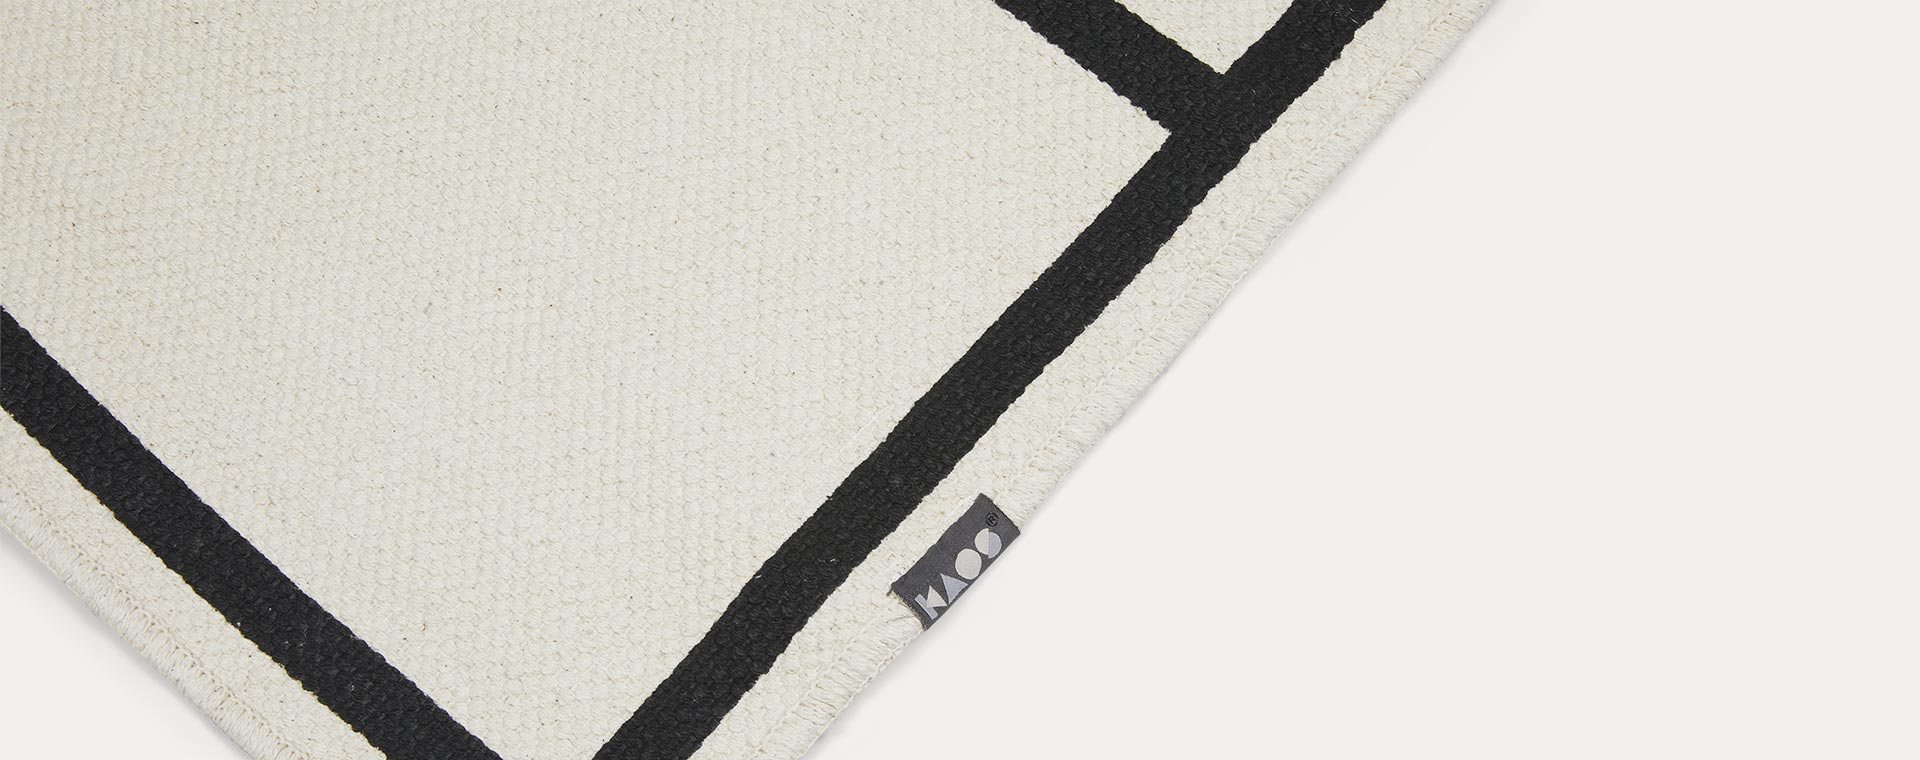 Off White KAOS Hopscotch Rug